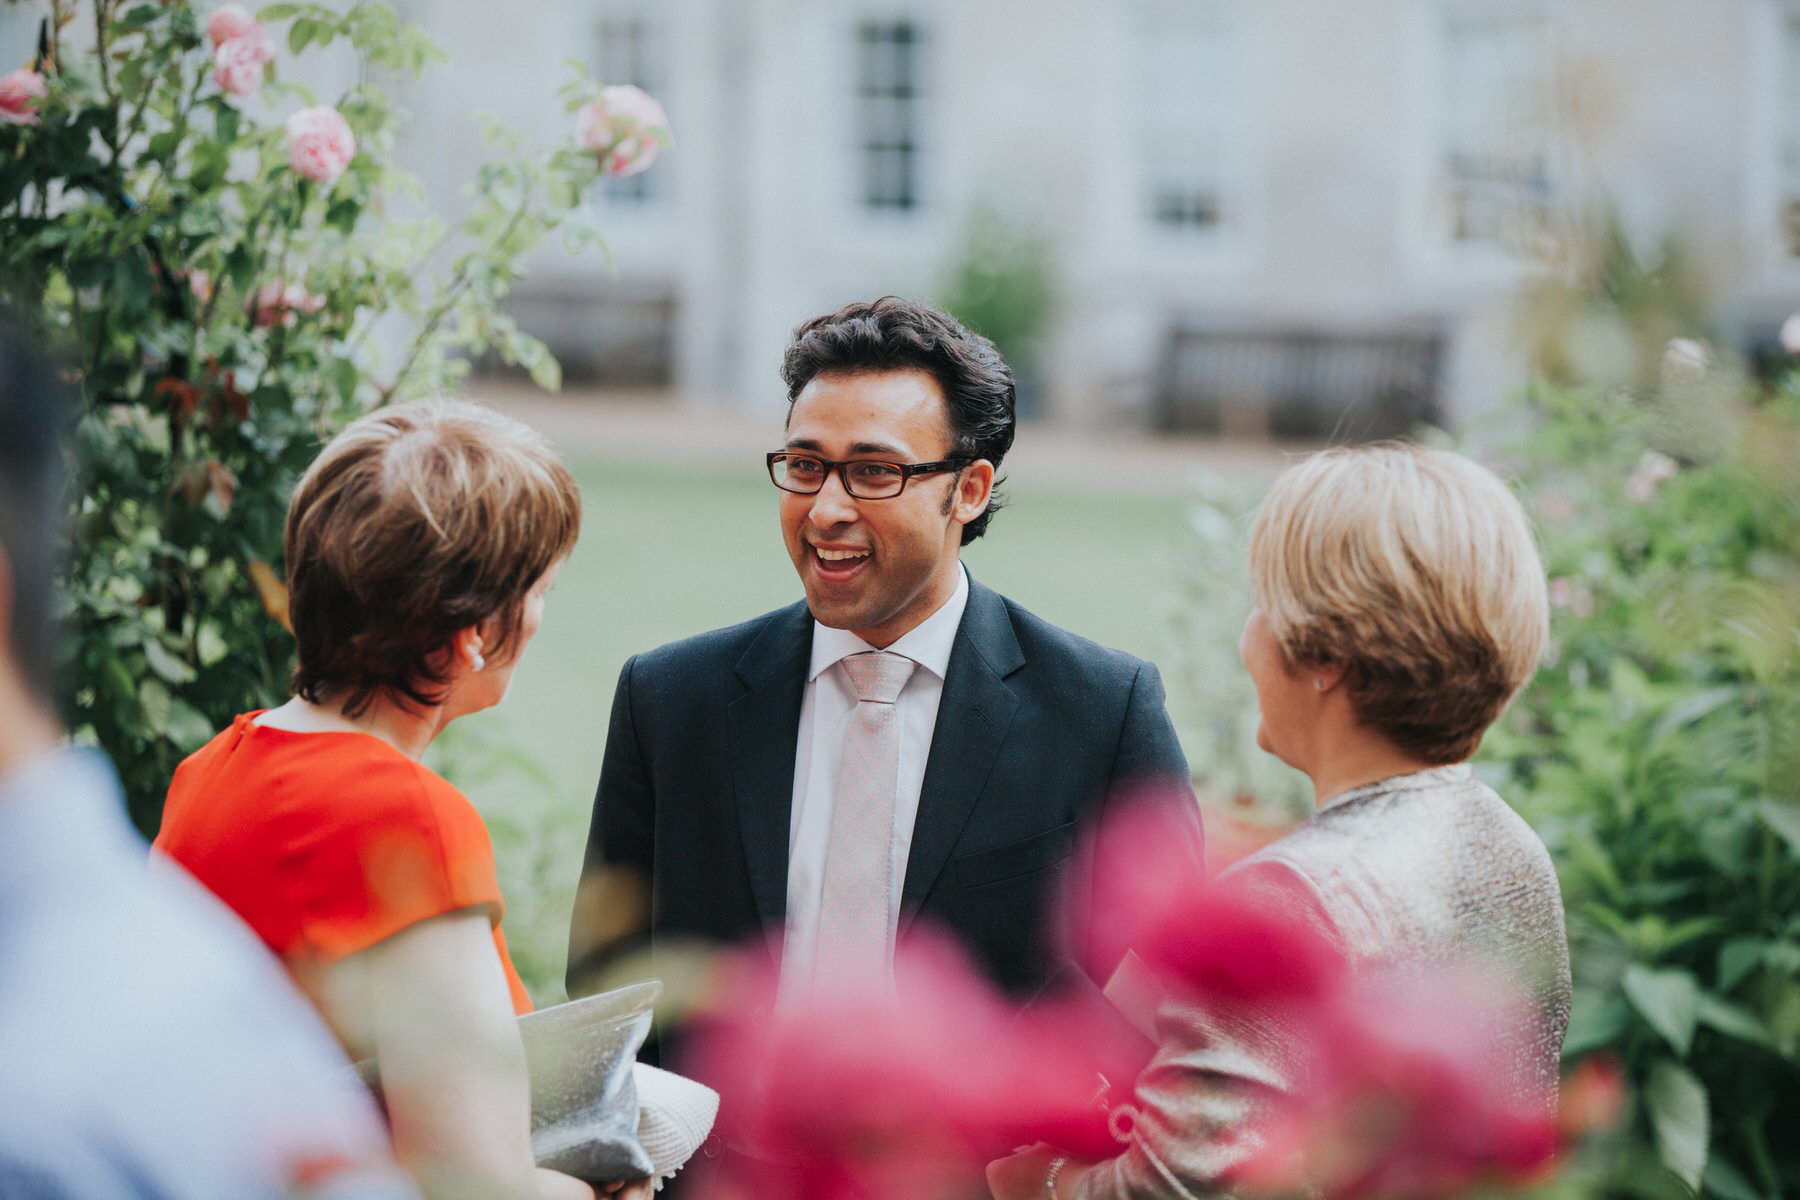 147-Anglo-Asian-London-Wedding-guest-reportage.jpg